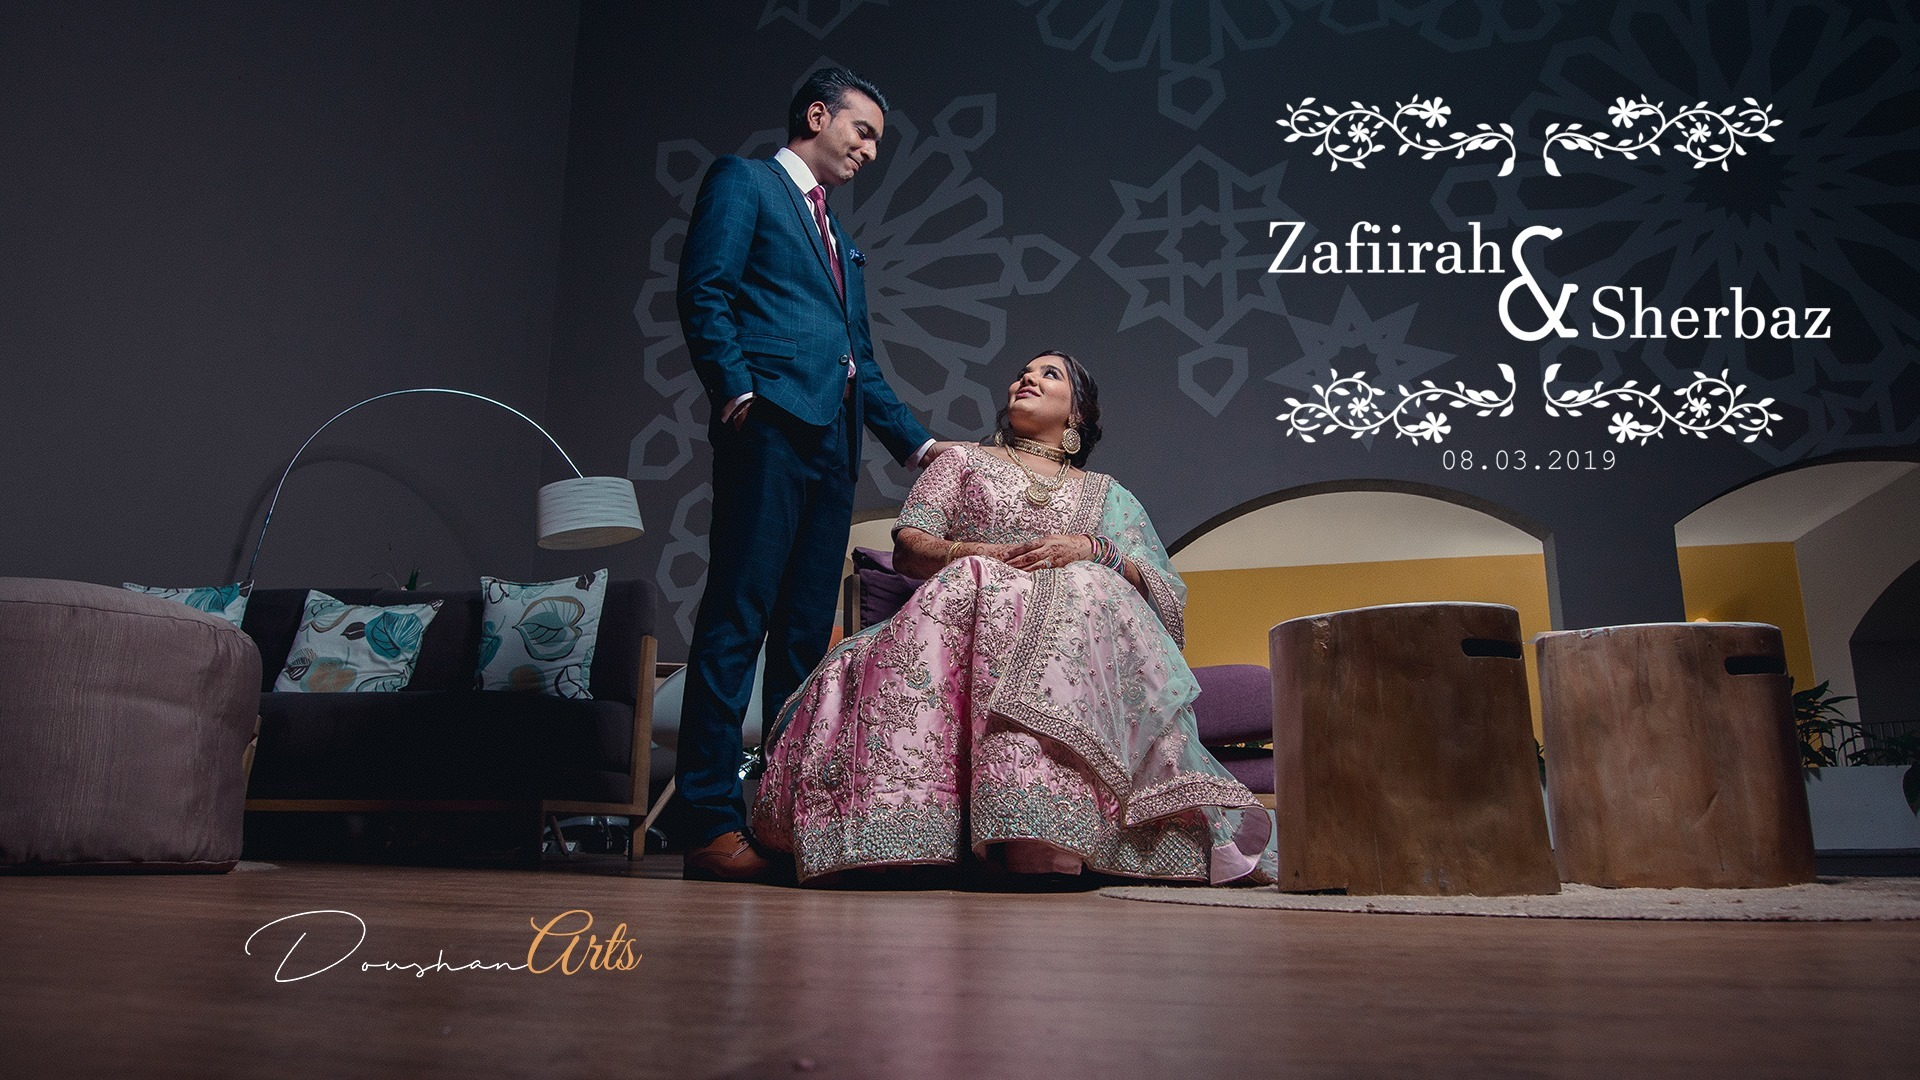 The Grand wedding of Zafiirah & Sherbaz